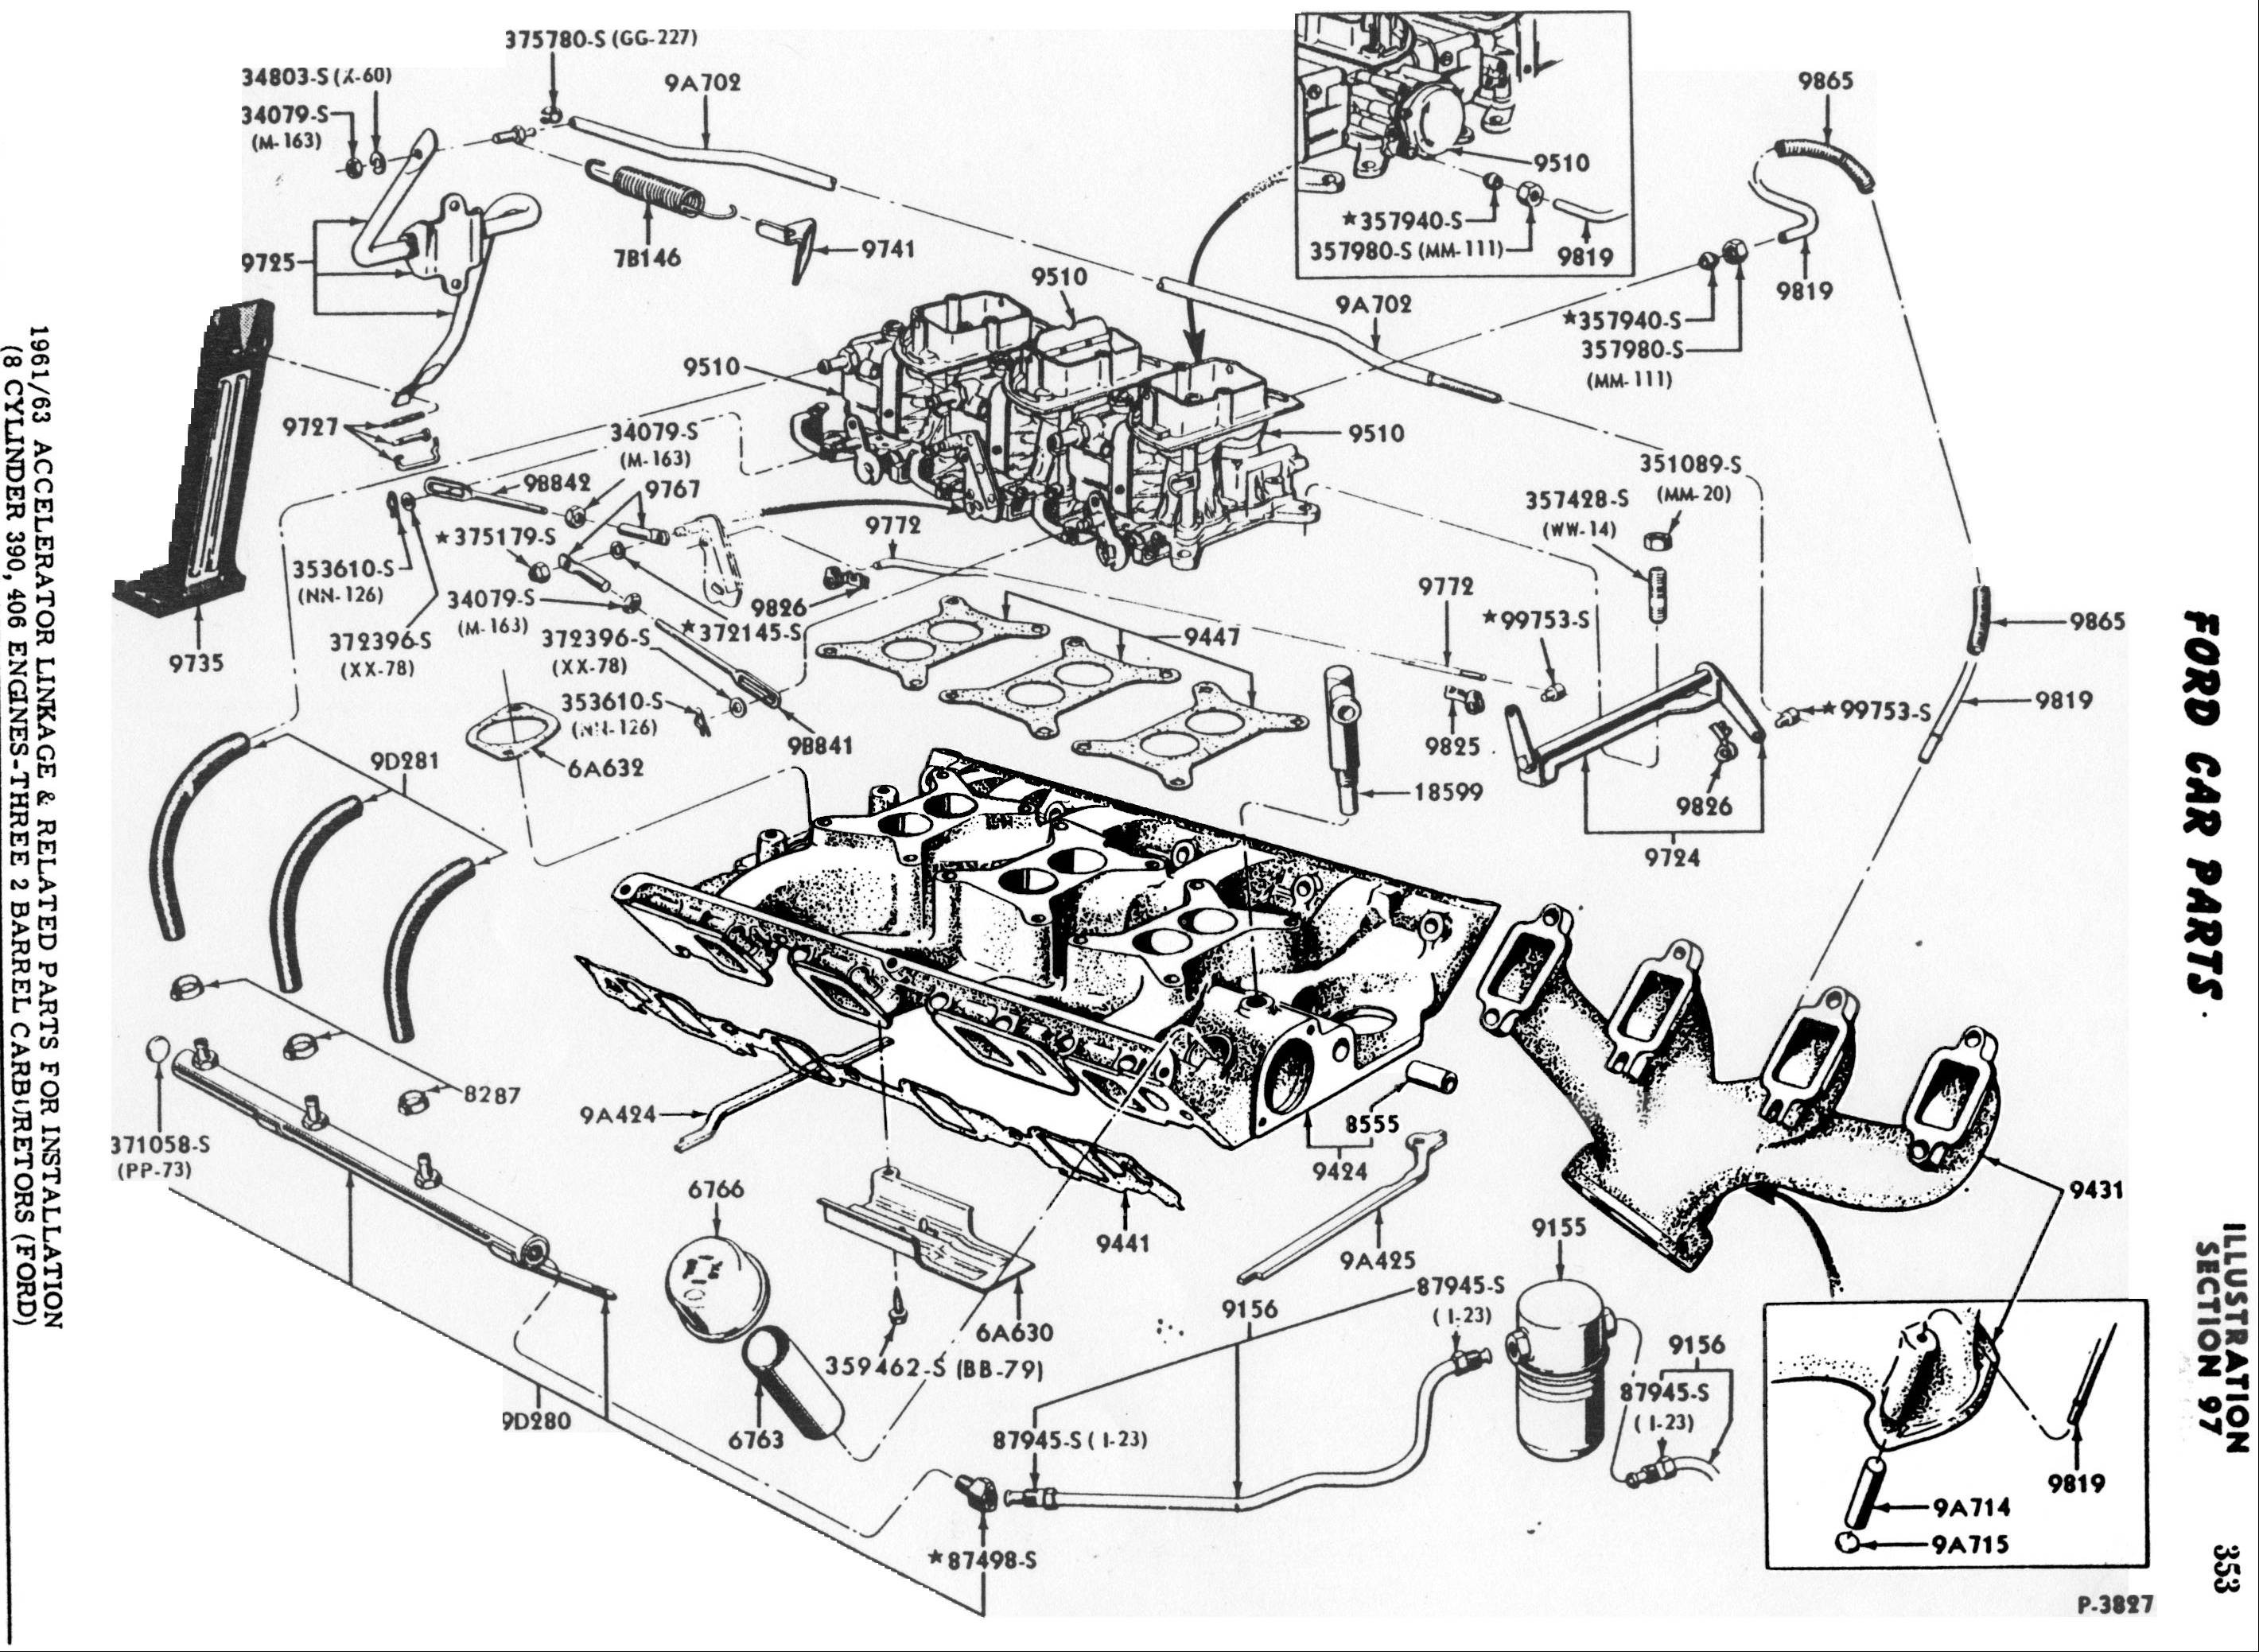 car engine diagram with labeled 460 ford engine diagram wiring info rh detoxicrecenze com GMC 5.3 Engine Diagram Engine Parts Diagram Labeled with Functions